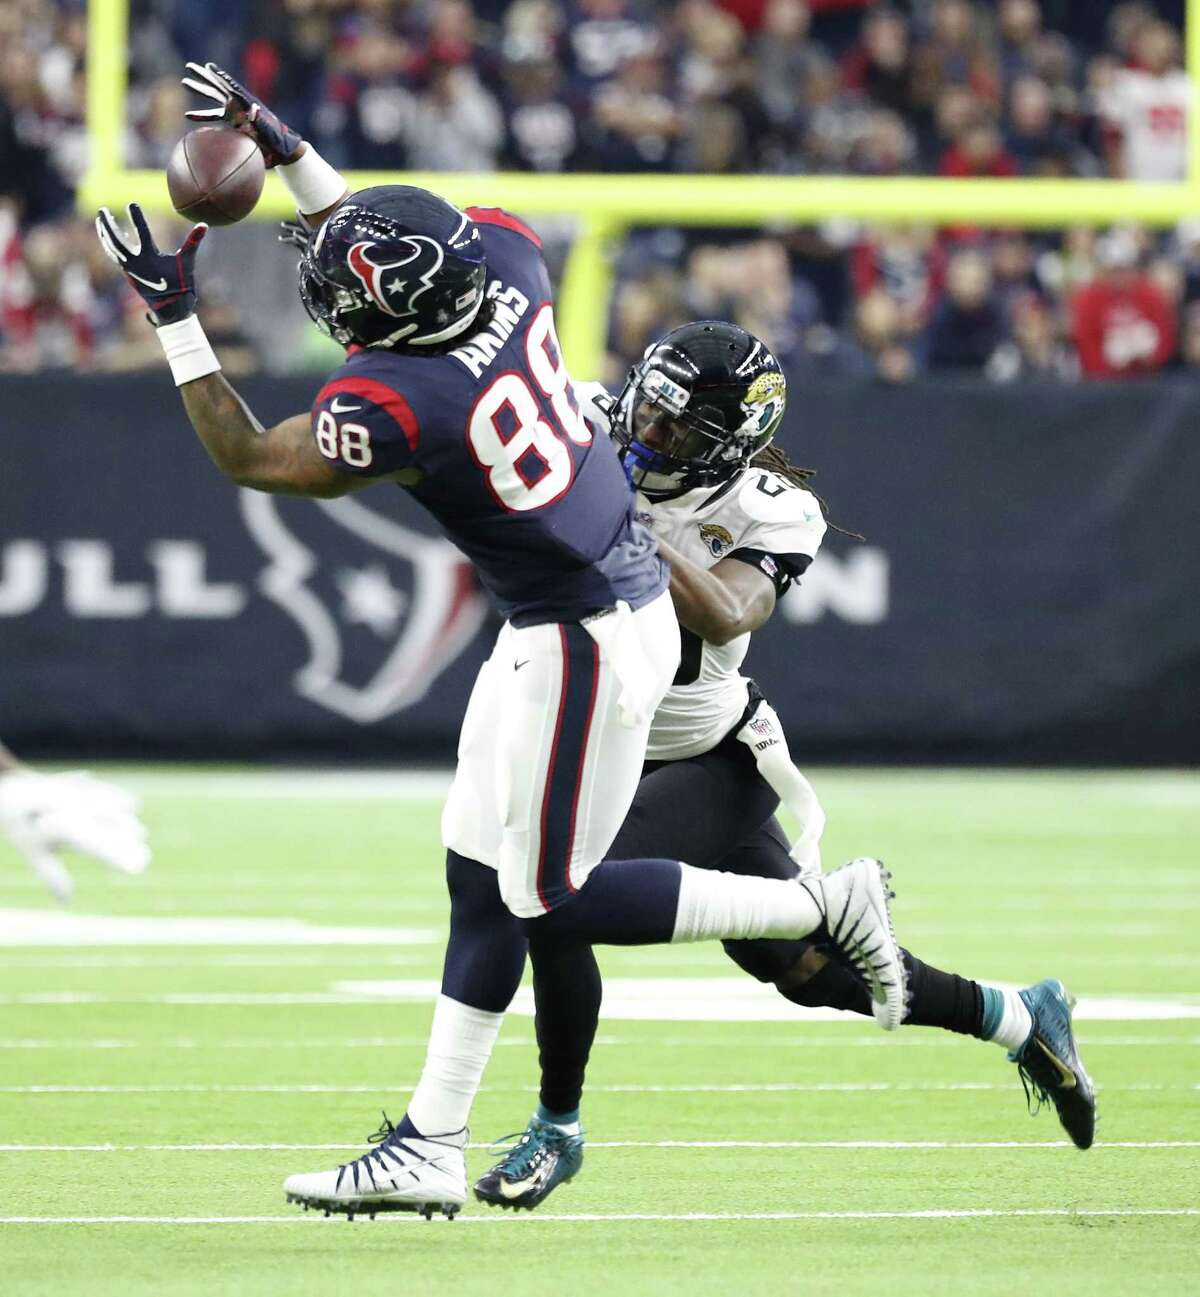 Houston Texans tight end Jordan Akins (88) tries to catch a pass against Jacksonville Jaguars defensive back Jarrod Wilson (26) during the fourth quarter of an NFL football game at NRG Stadium, Sunday, Dec. 30, 2018, in Houston.